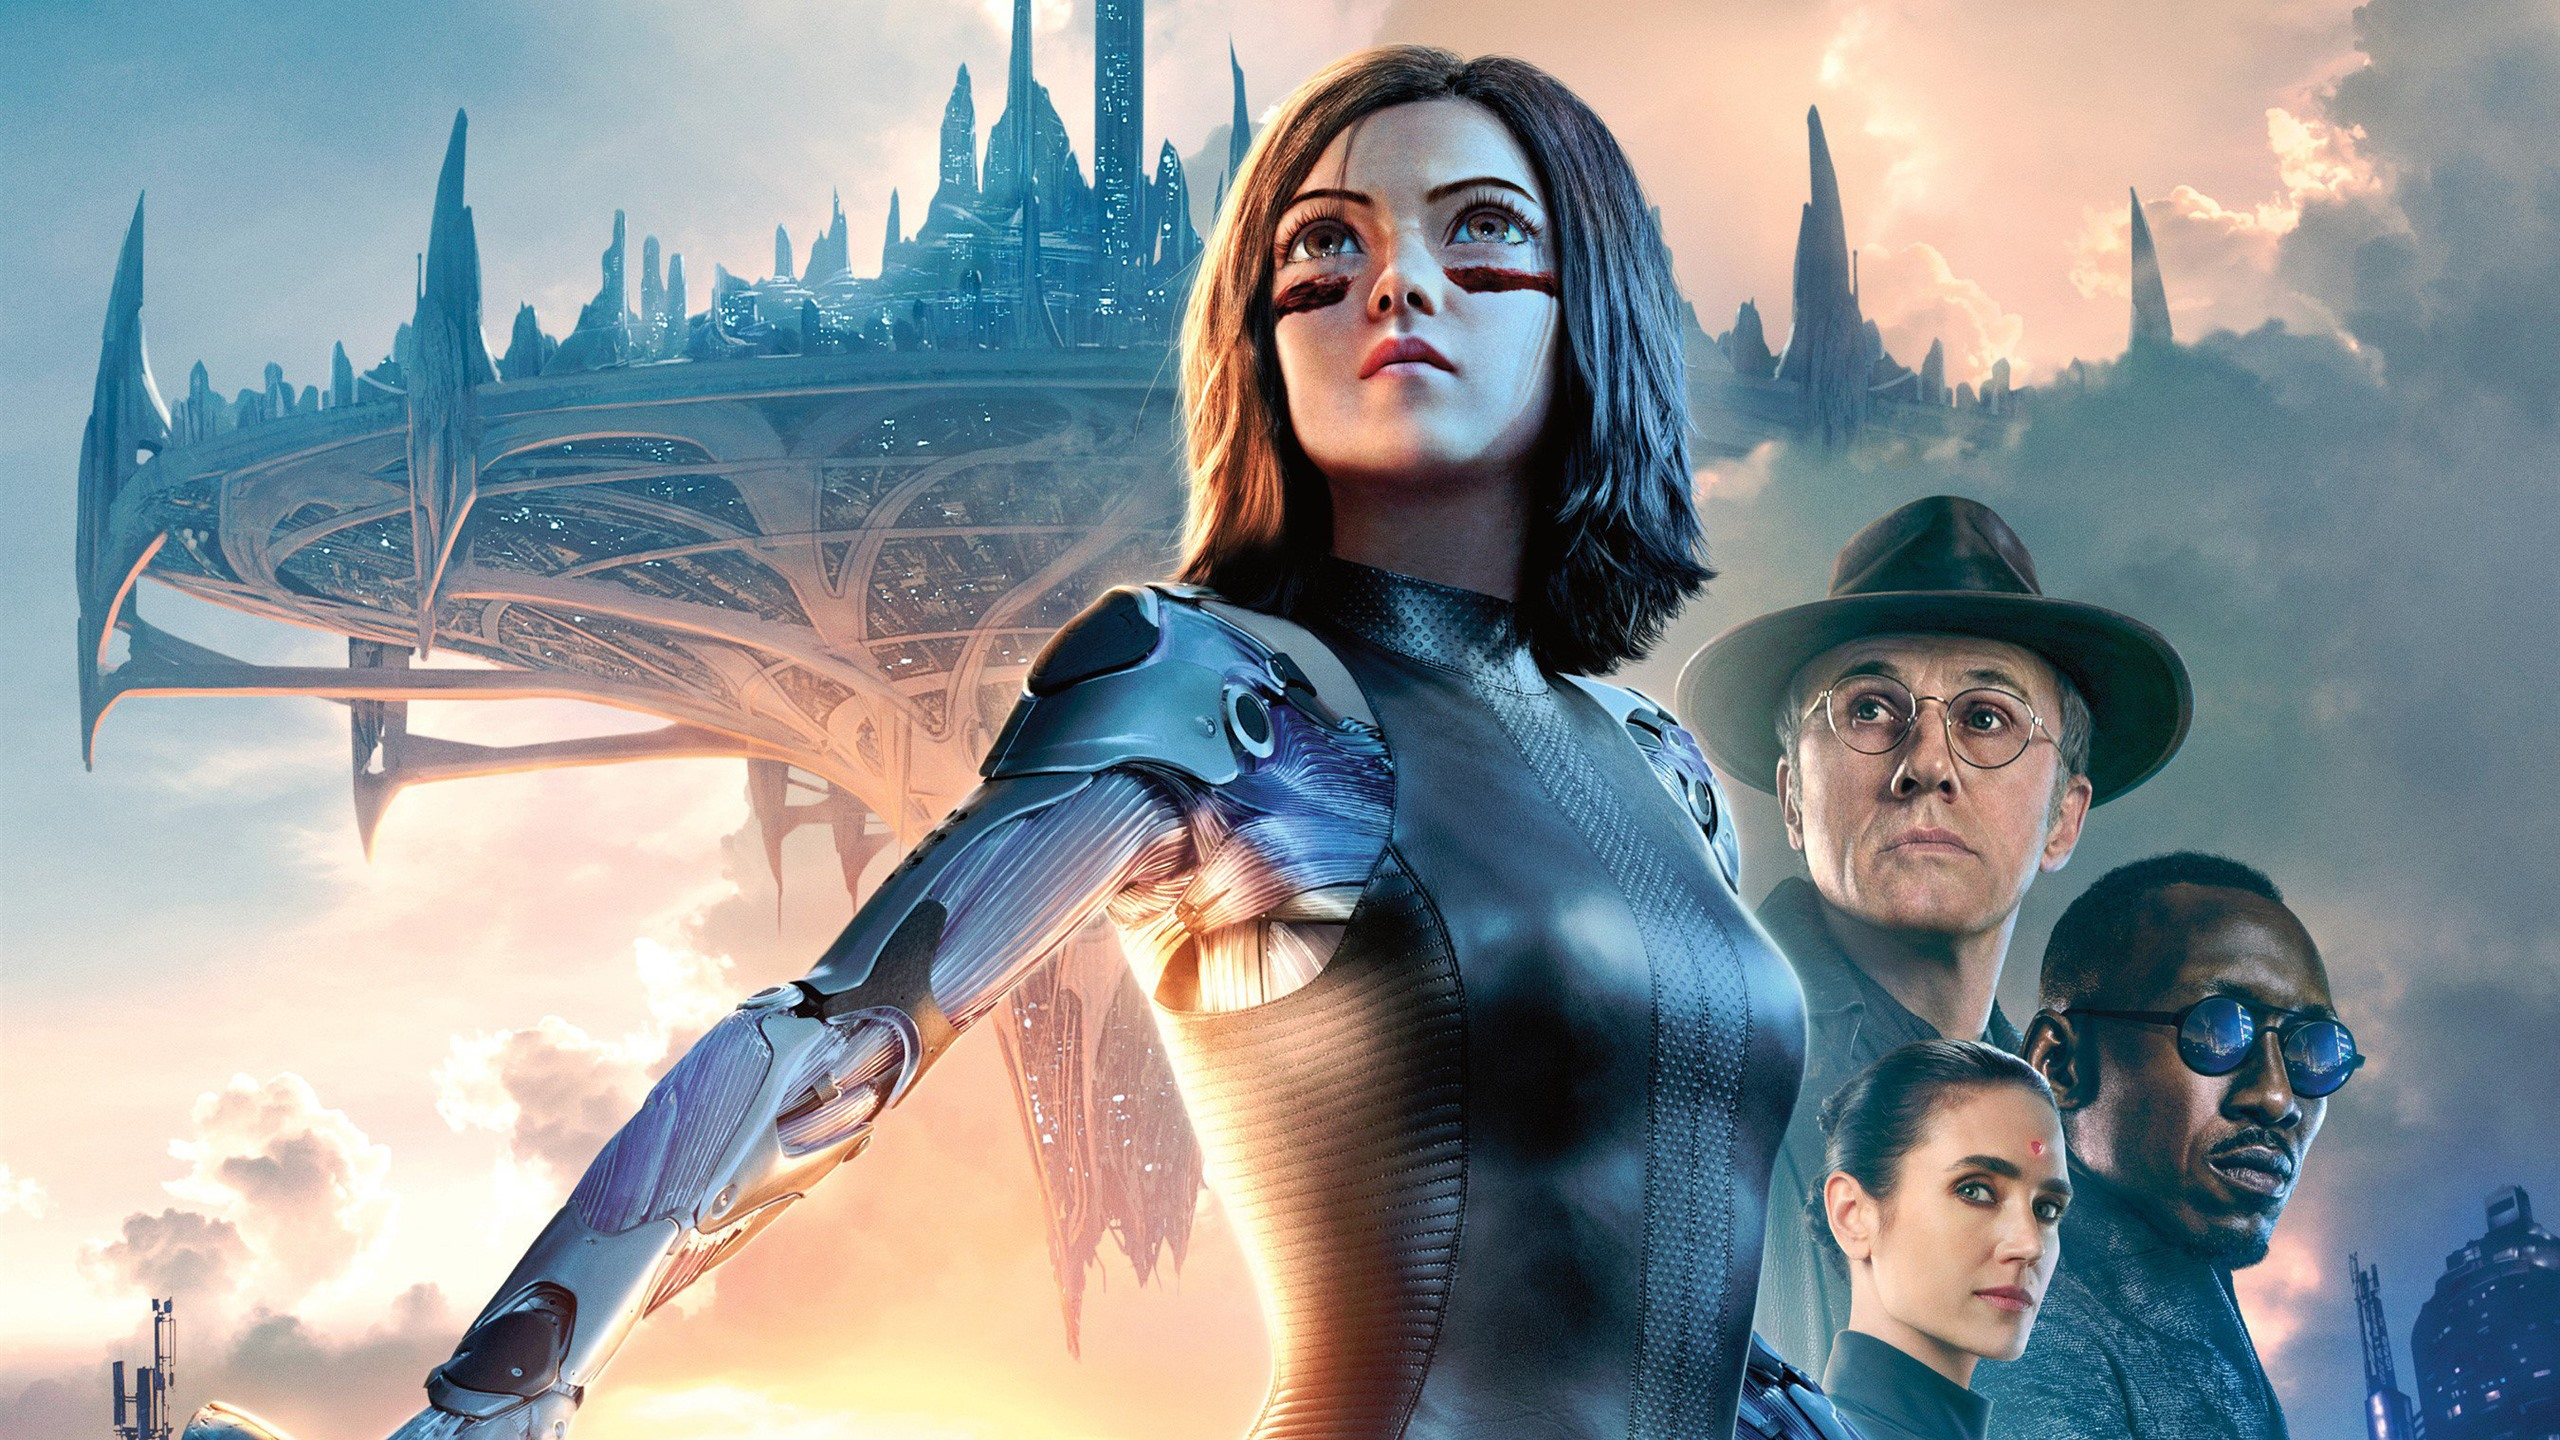 Wallpaper Alita Battle Angel 2019 2560x1600 Hd Picture Image